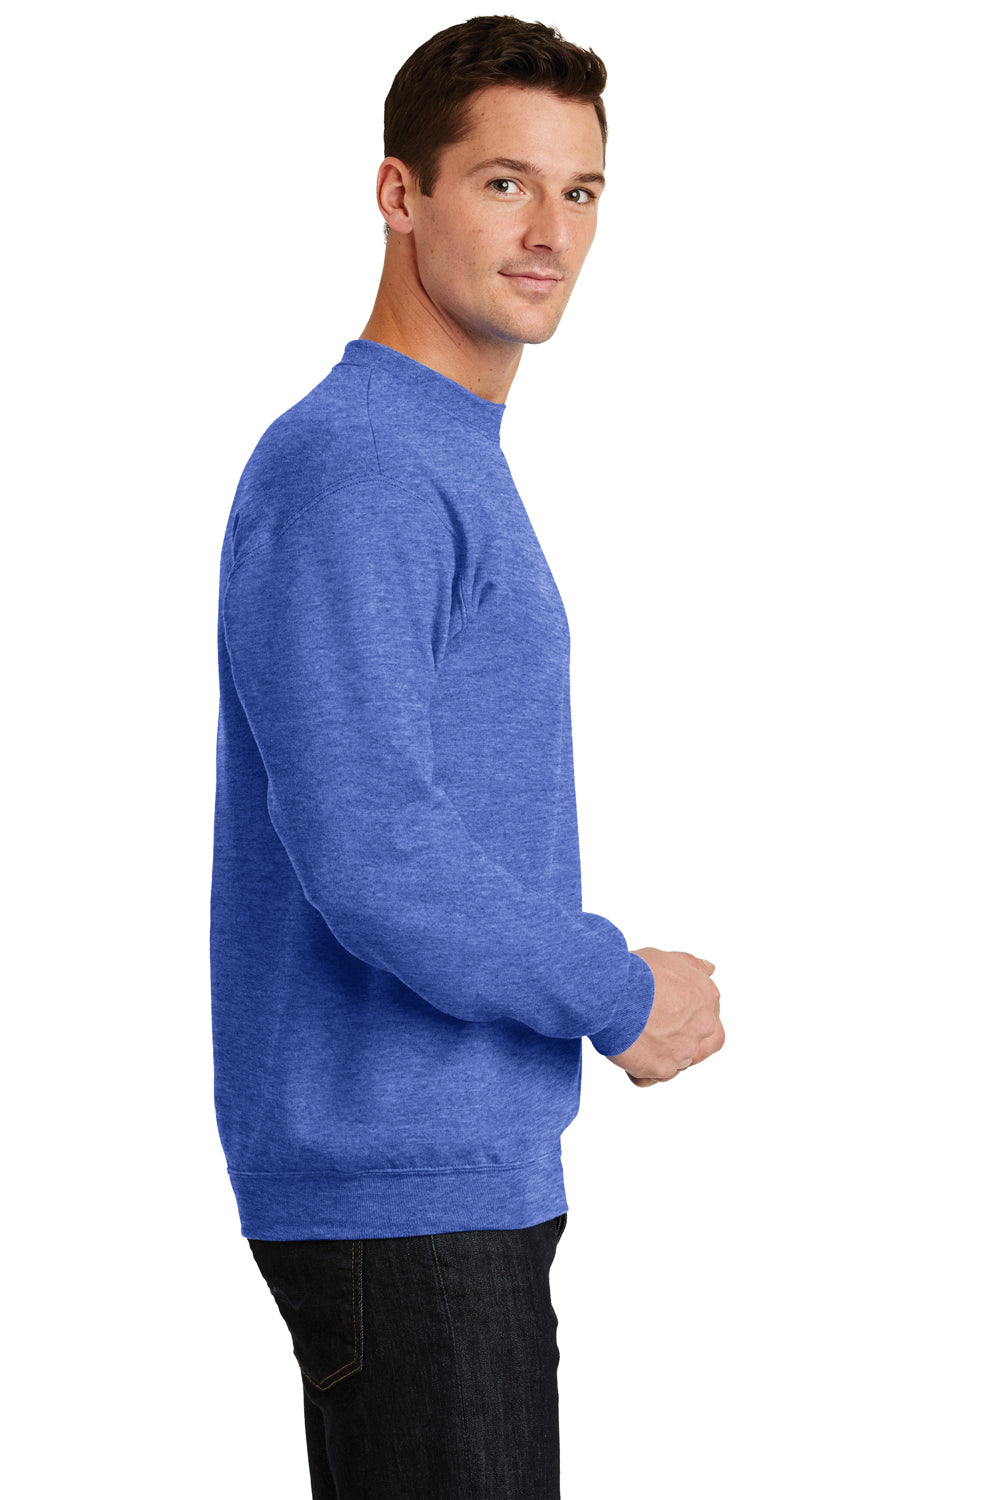 Port & Company PC78 Mens Core Fleece Crewneck Sweatshirt Heather Royal Blue Side